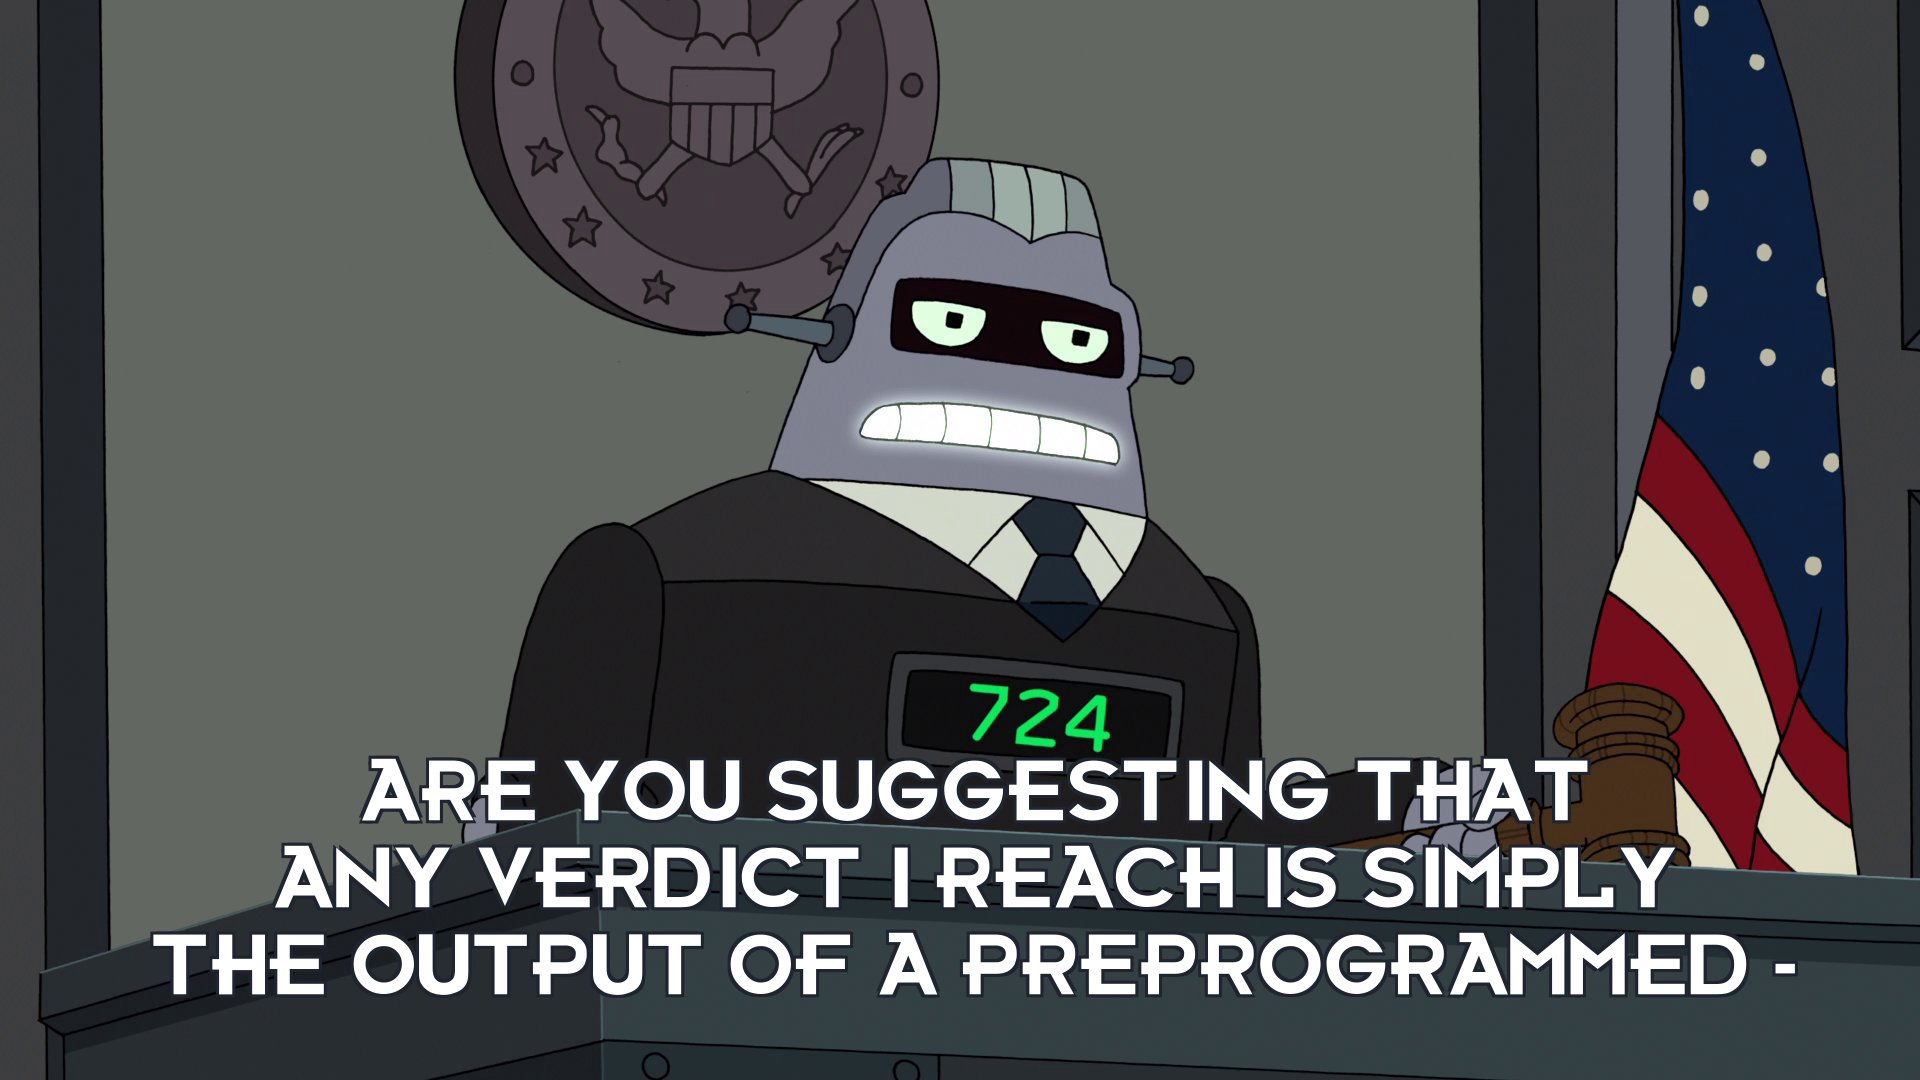 Judge 724: Are you suggesting that any verdict I reach is simply the output of a preprogrammed –